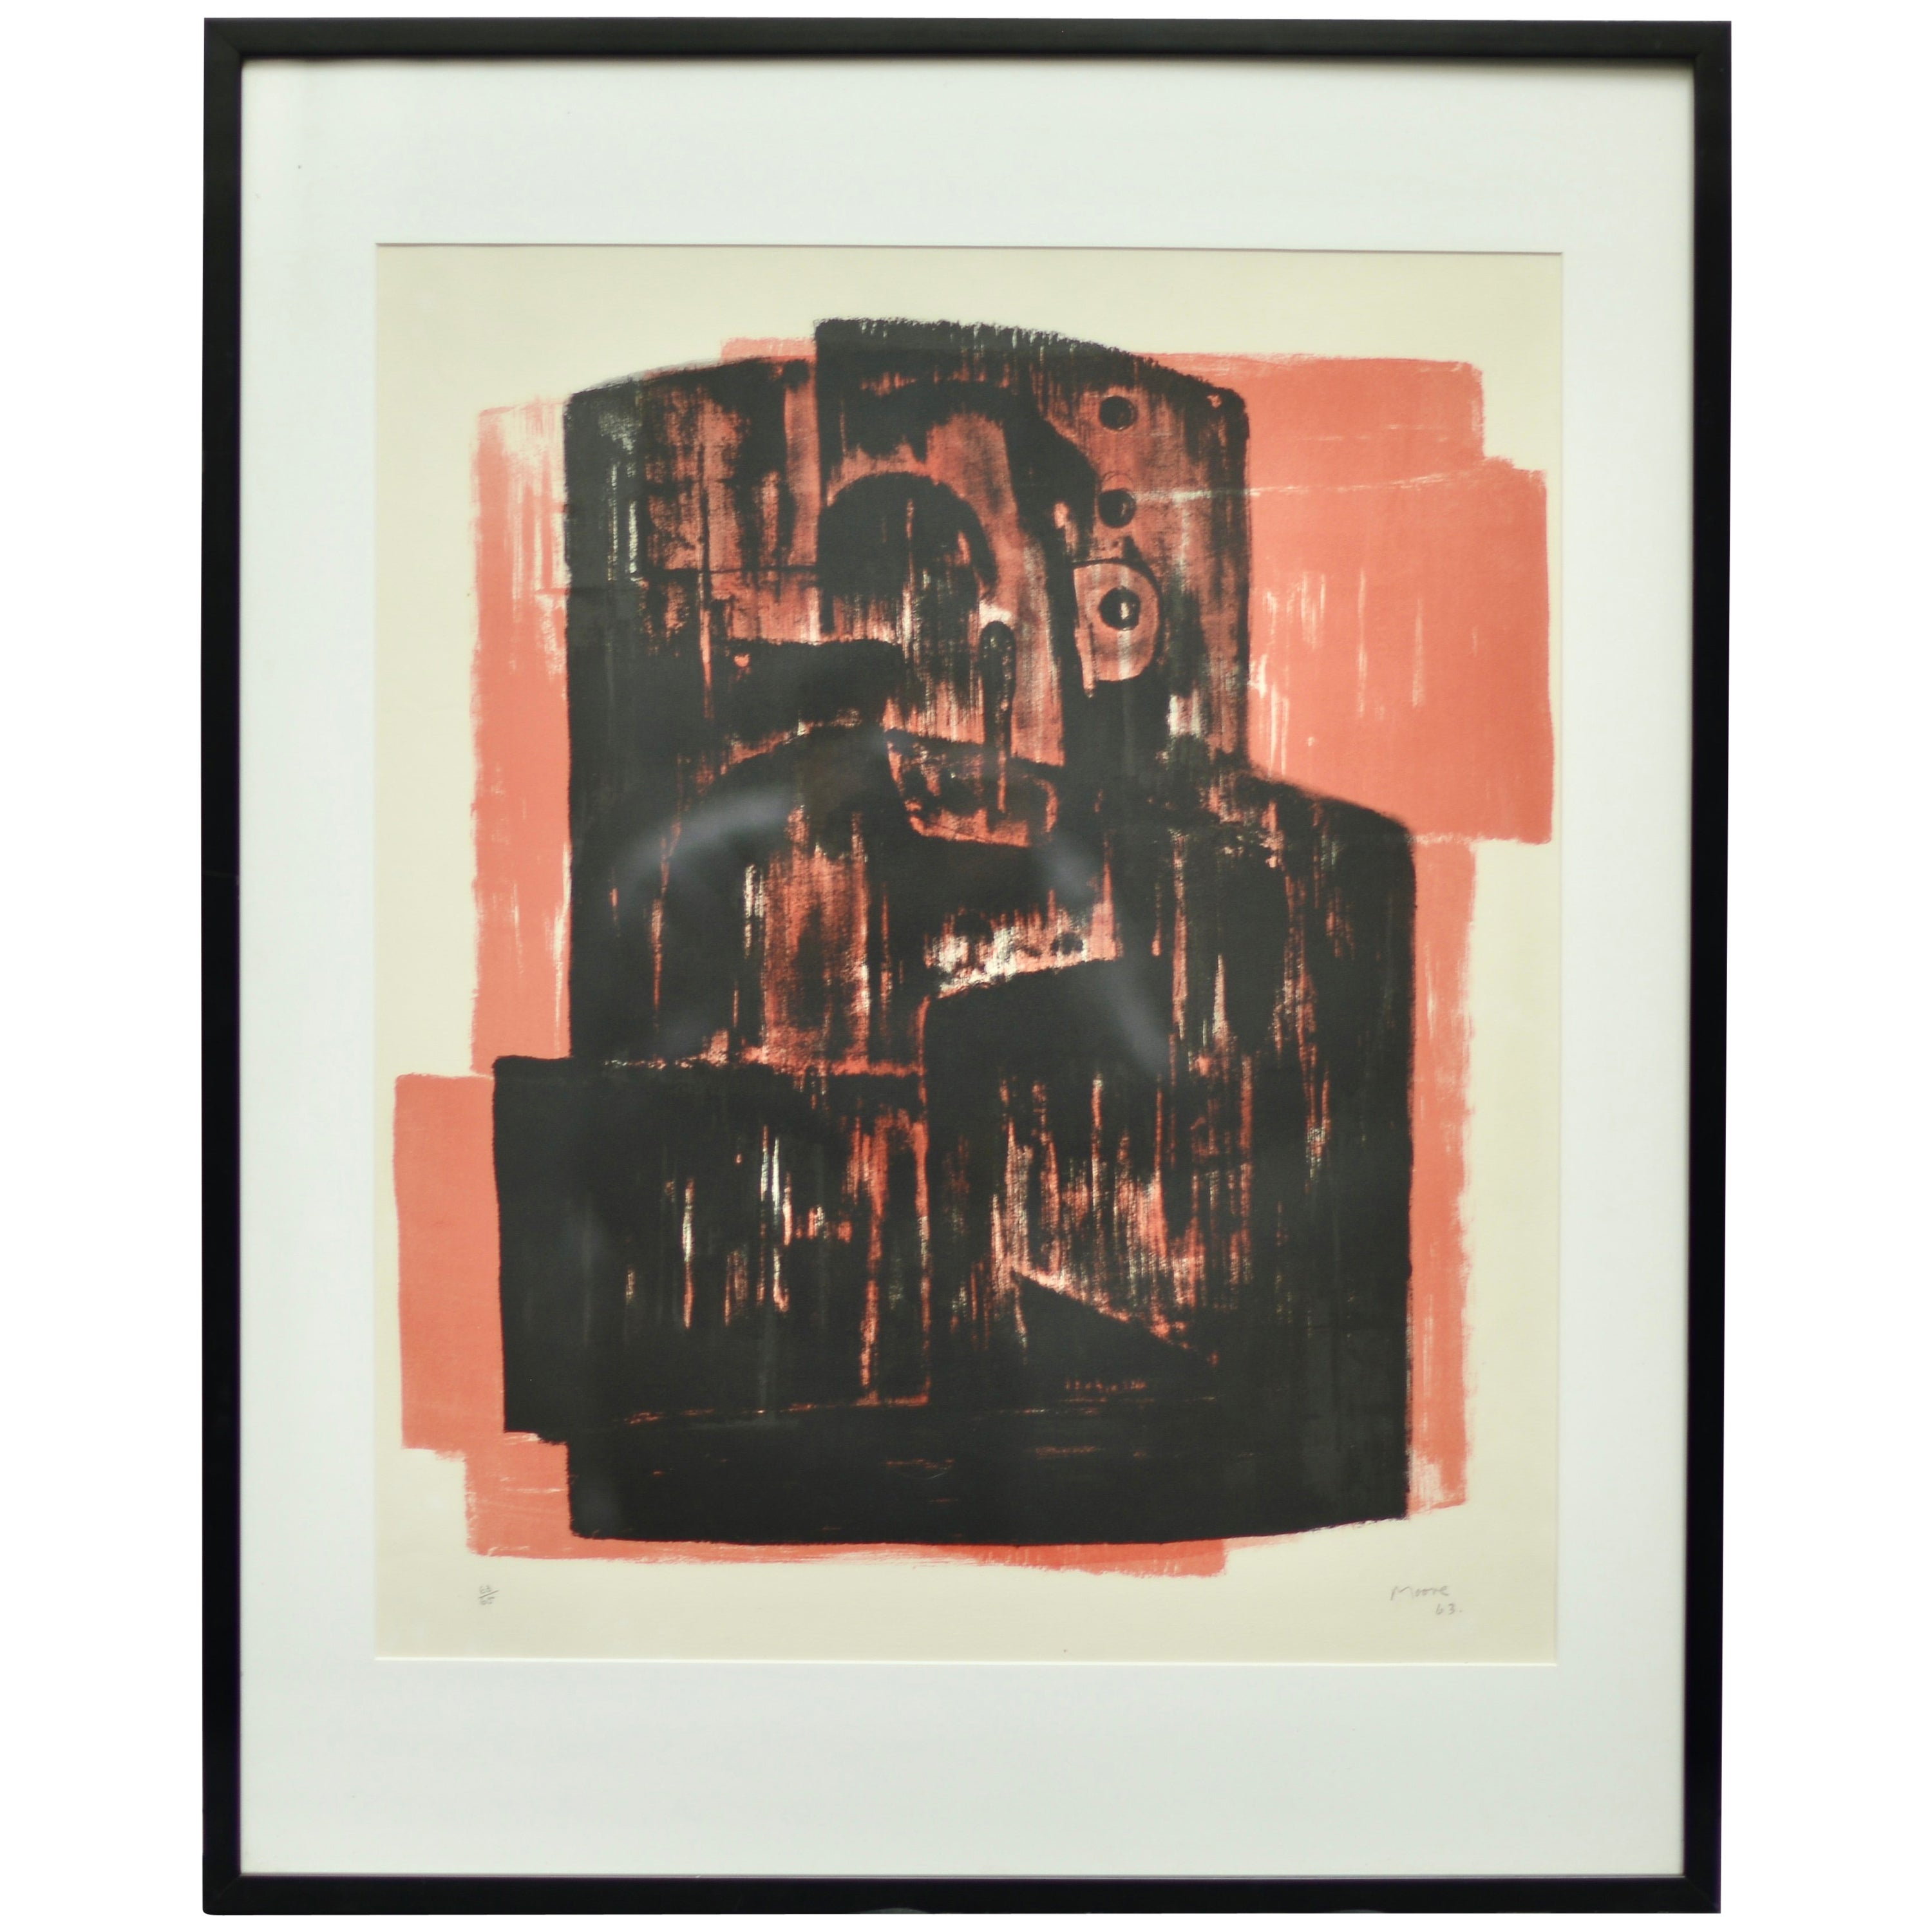 Henry Moore 'Black on Red' Lithograph, Signed and Numbered, 1963